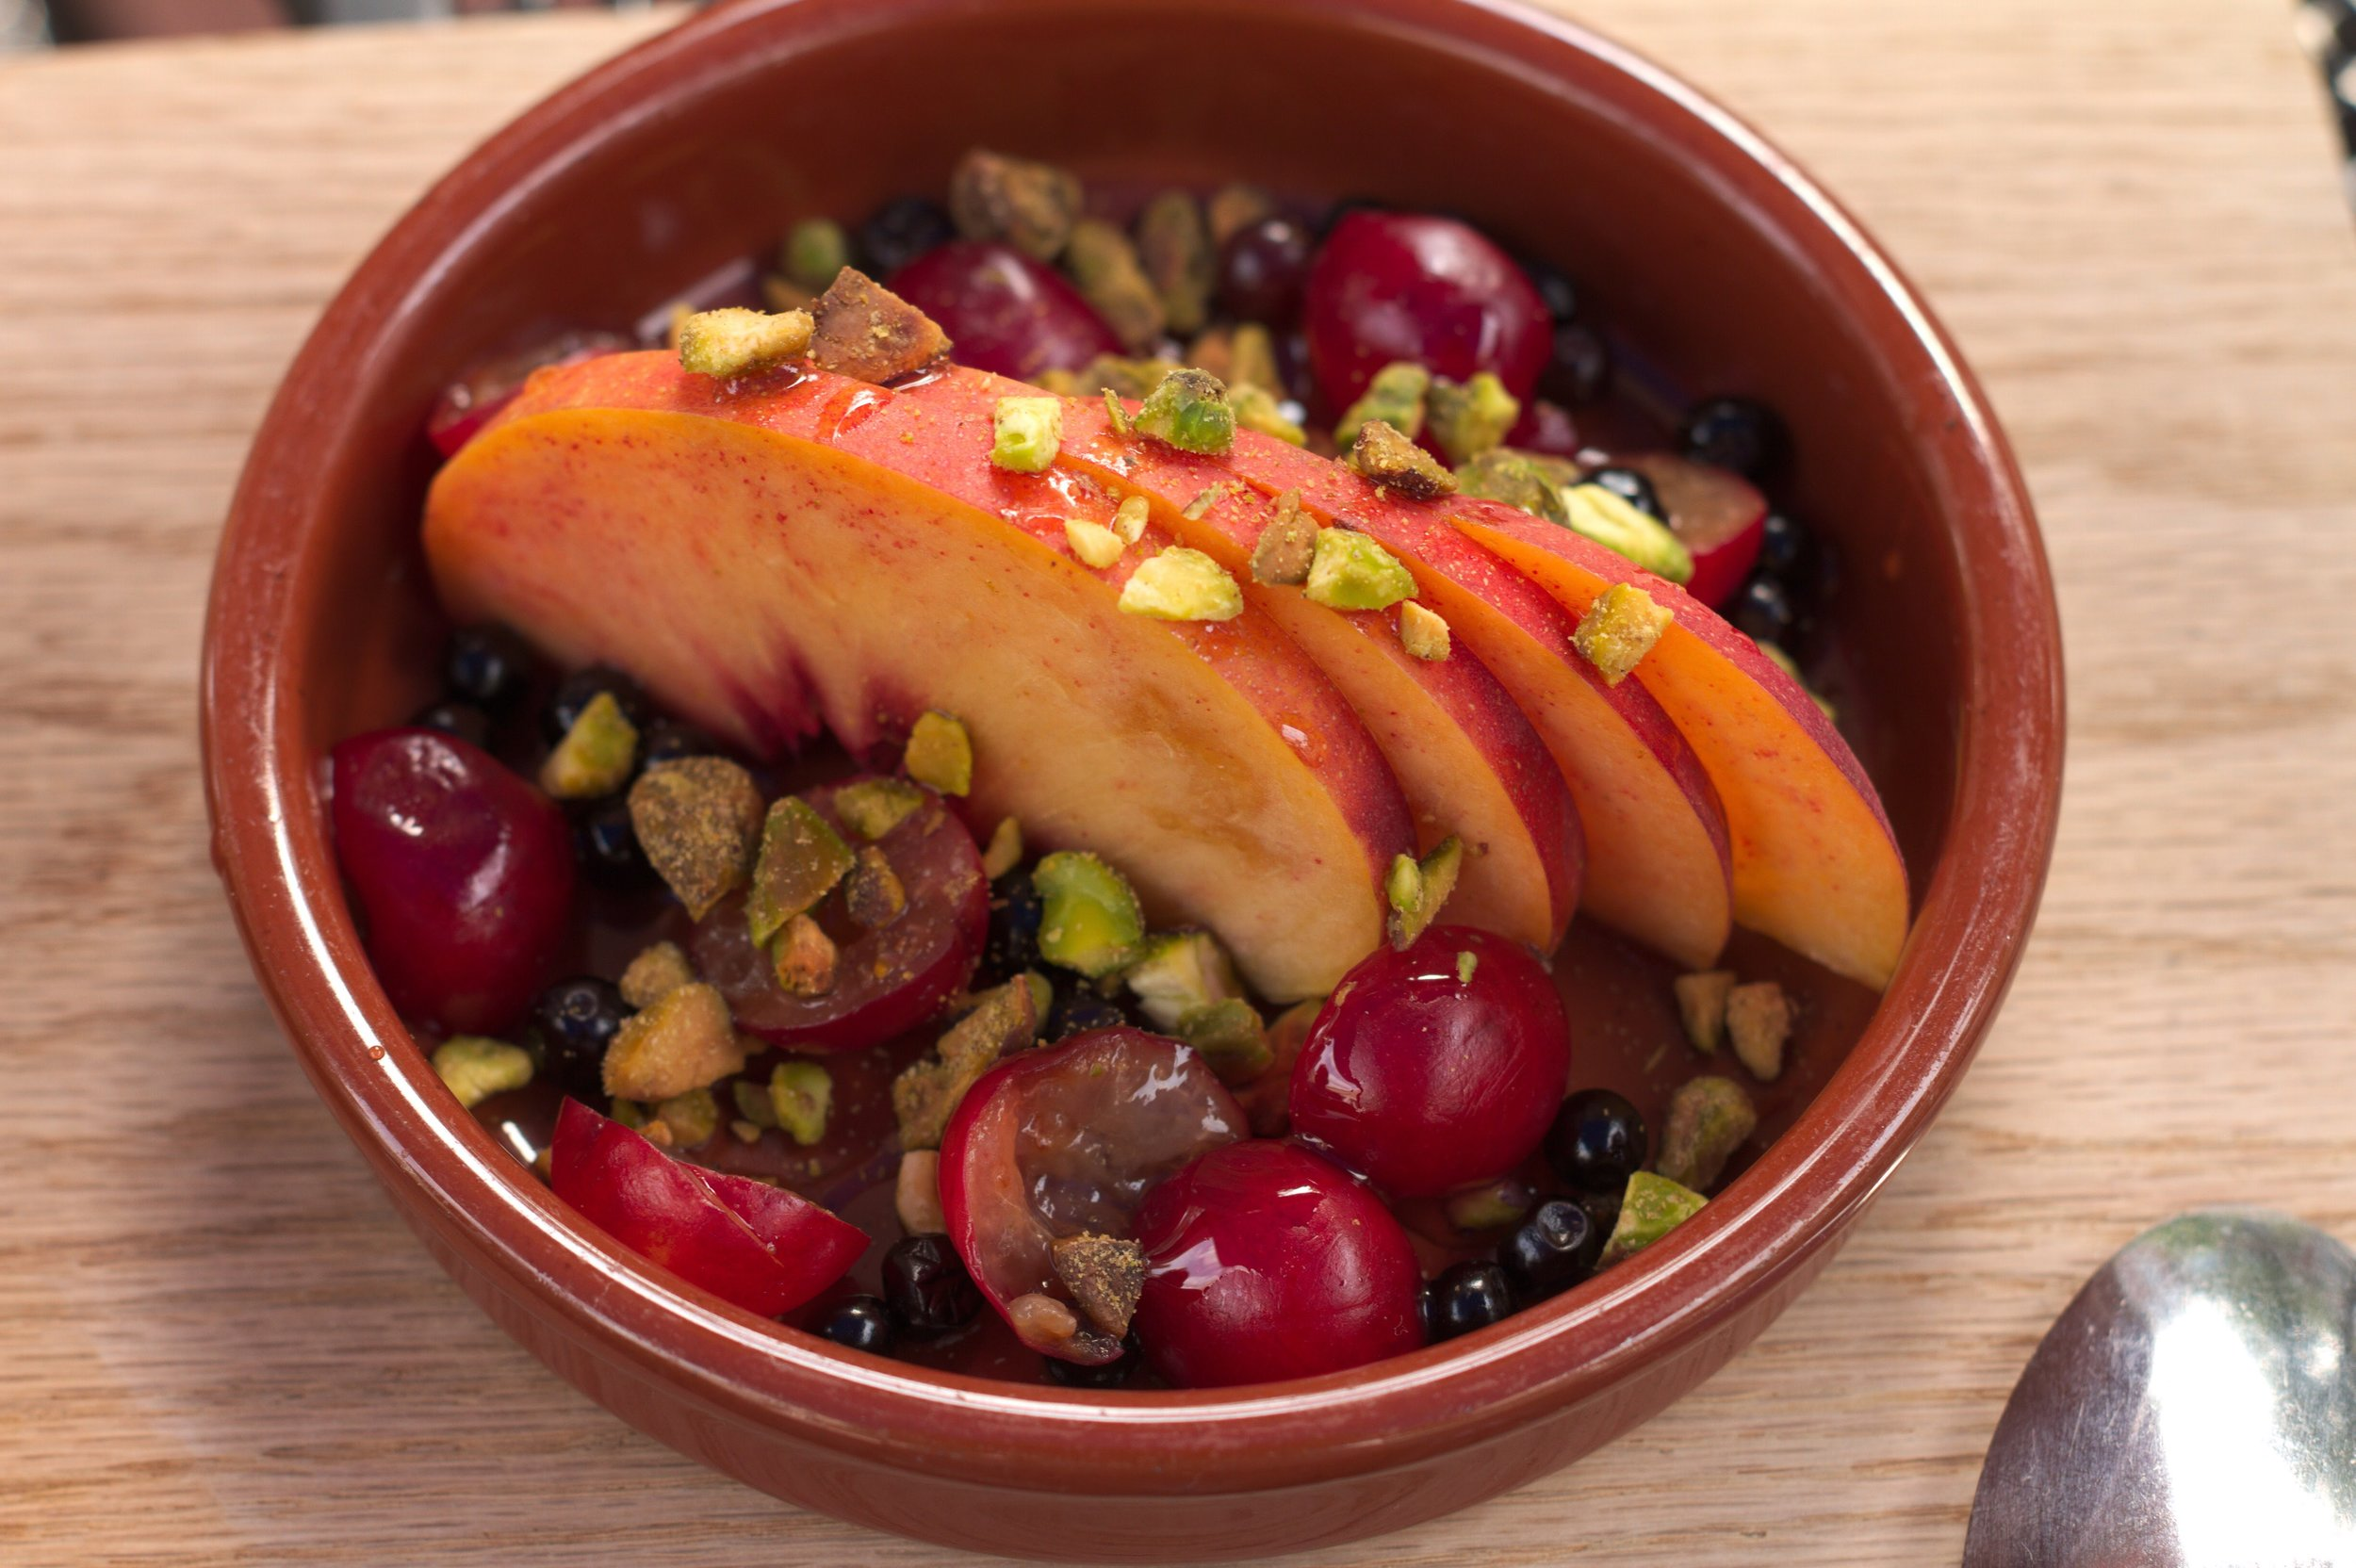 Sliced peaches with pistachios and sour cherries.